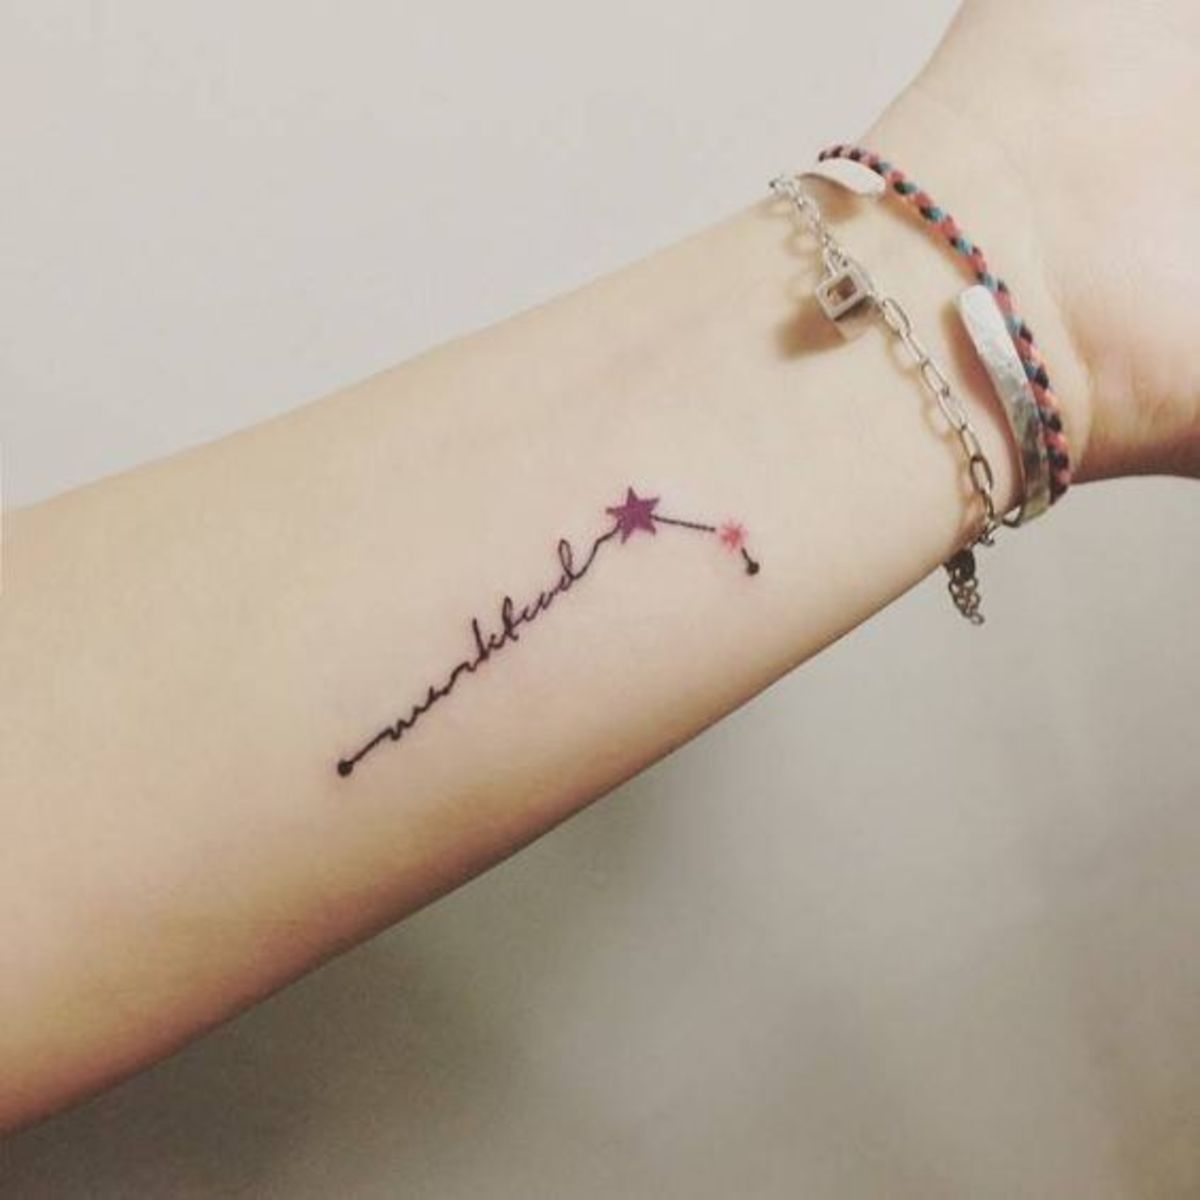 Dainty Aries constellation tattoo